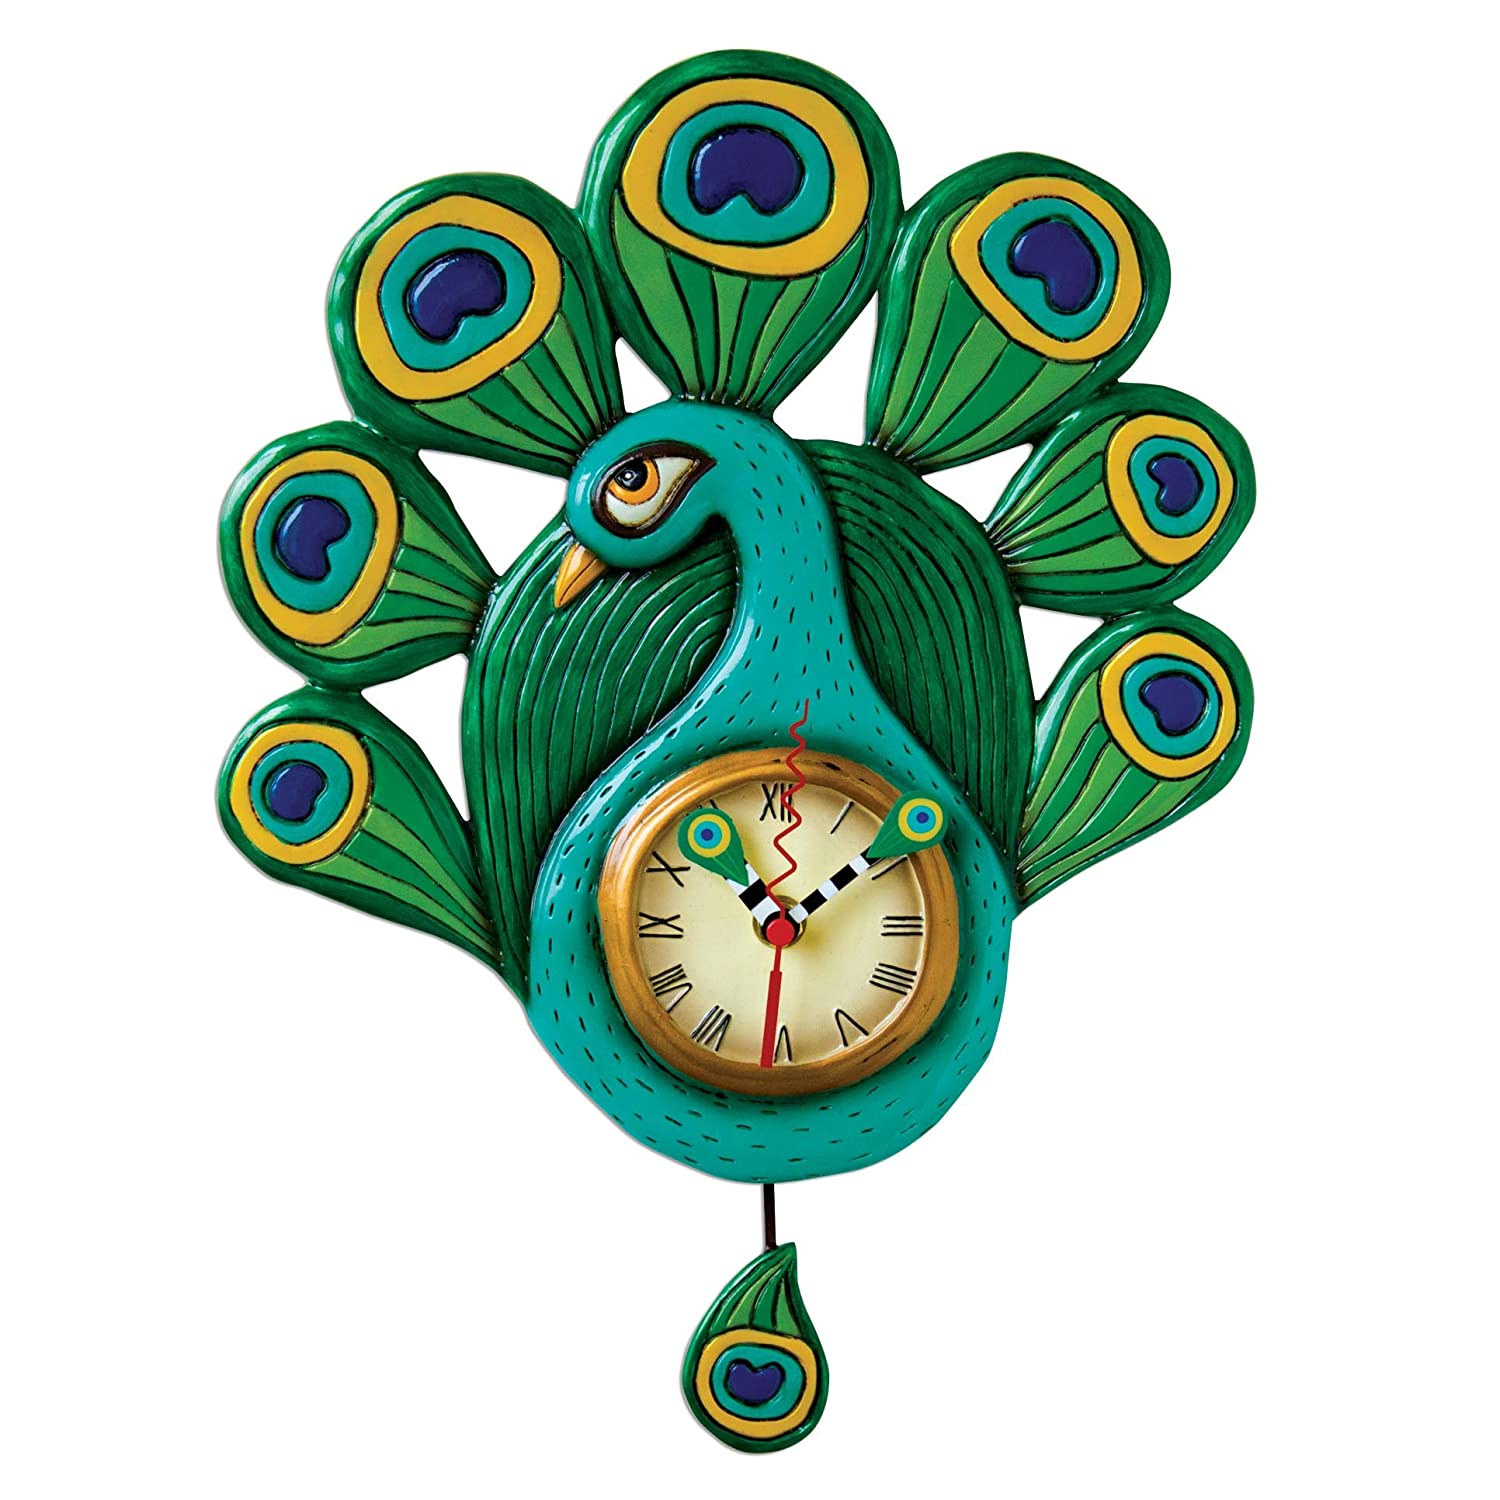 Funny allen design wall clock for clock lovers funny allen design wall clock for clock lovers amipublicfo Gallery